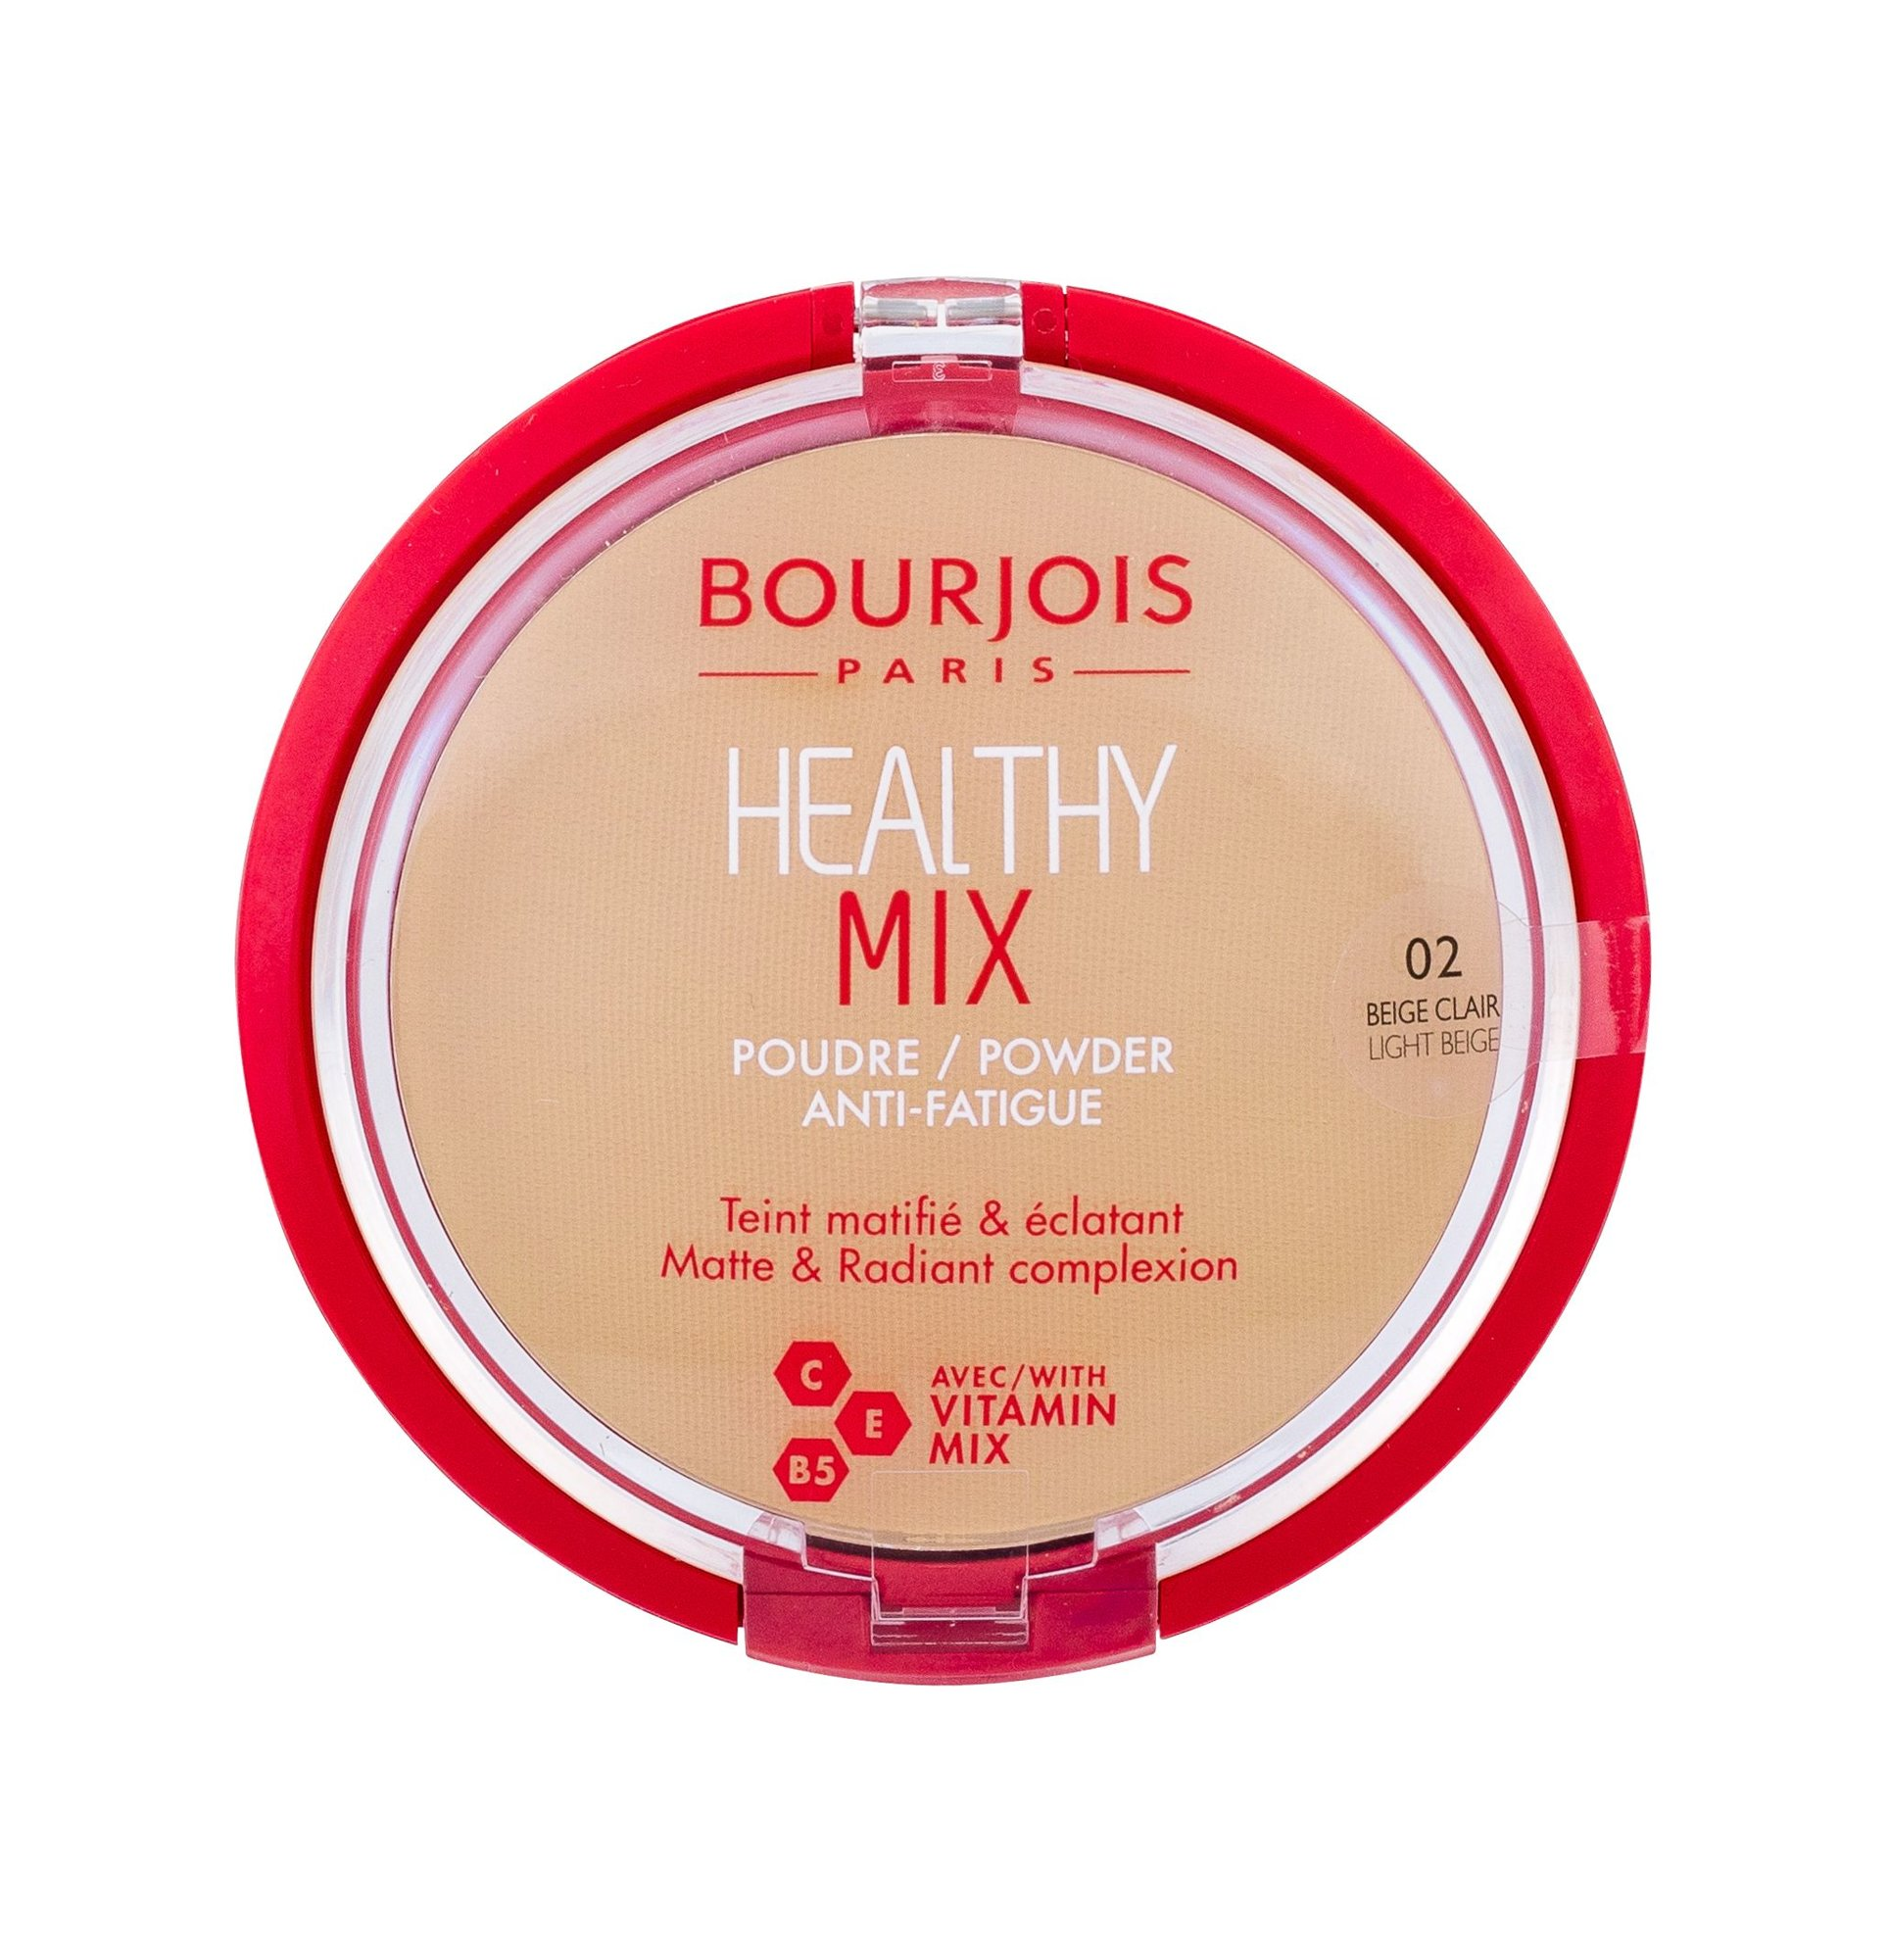 BOURJOIS Paris Healthy Mix Powder 11ml 02 Light Beige